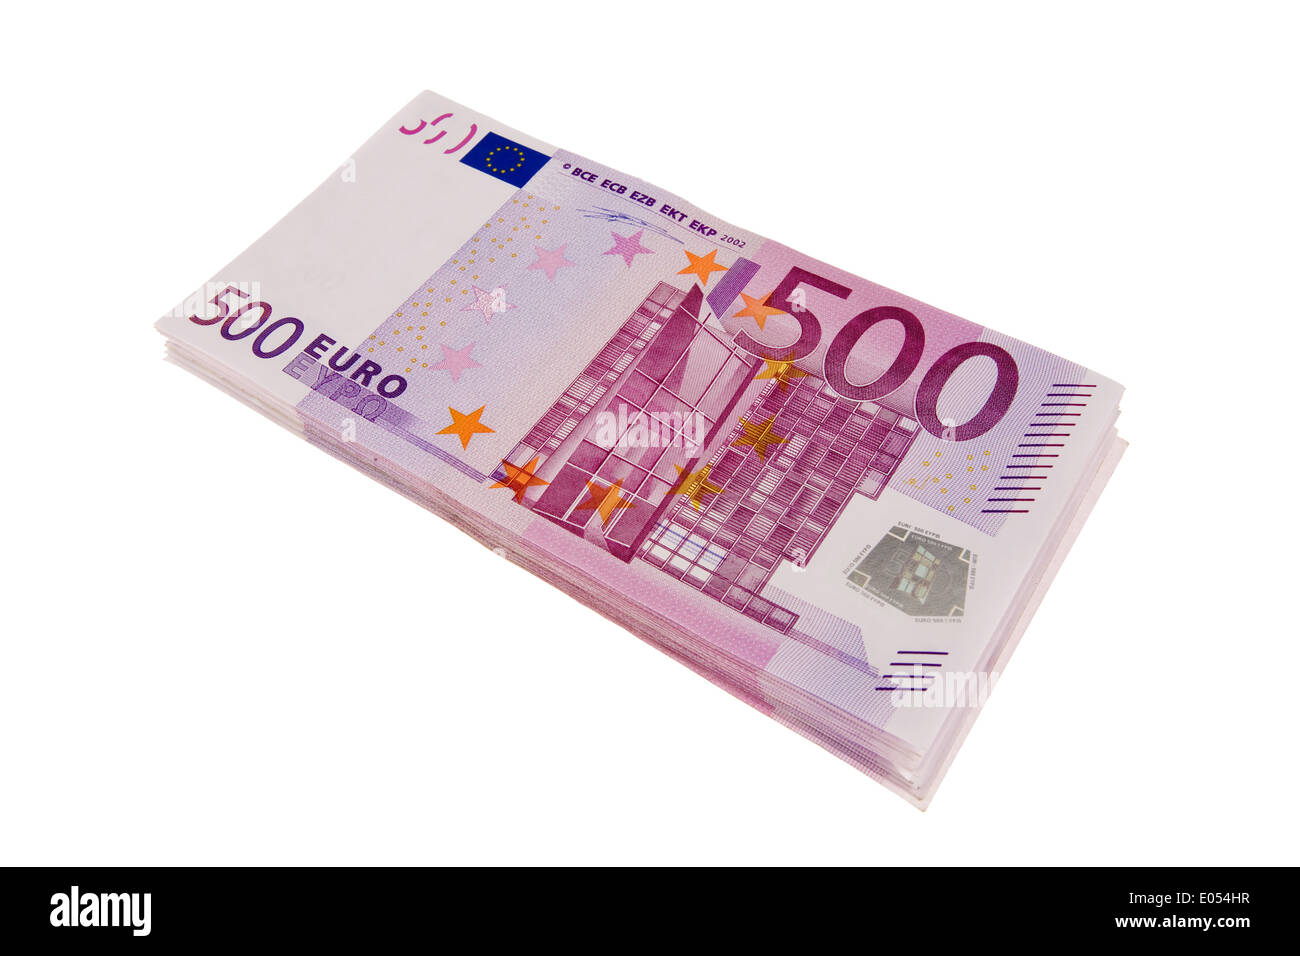 .know know isolates isolated free plates release exemptly concepts currency economy and notes light pictures photos Stock Photo